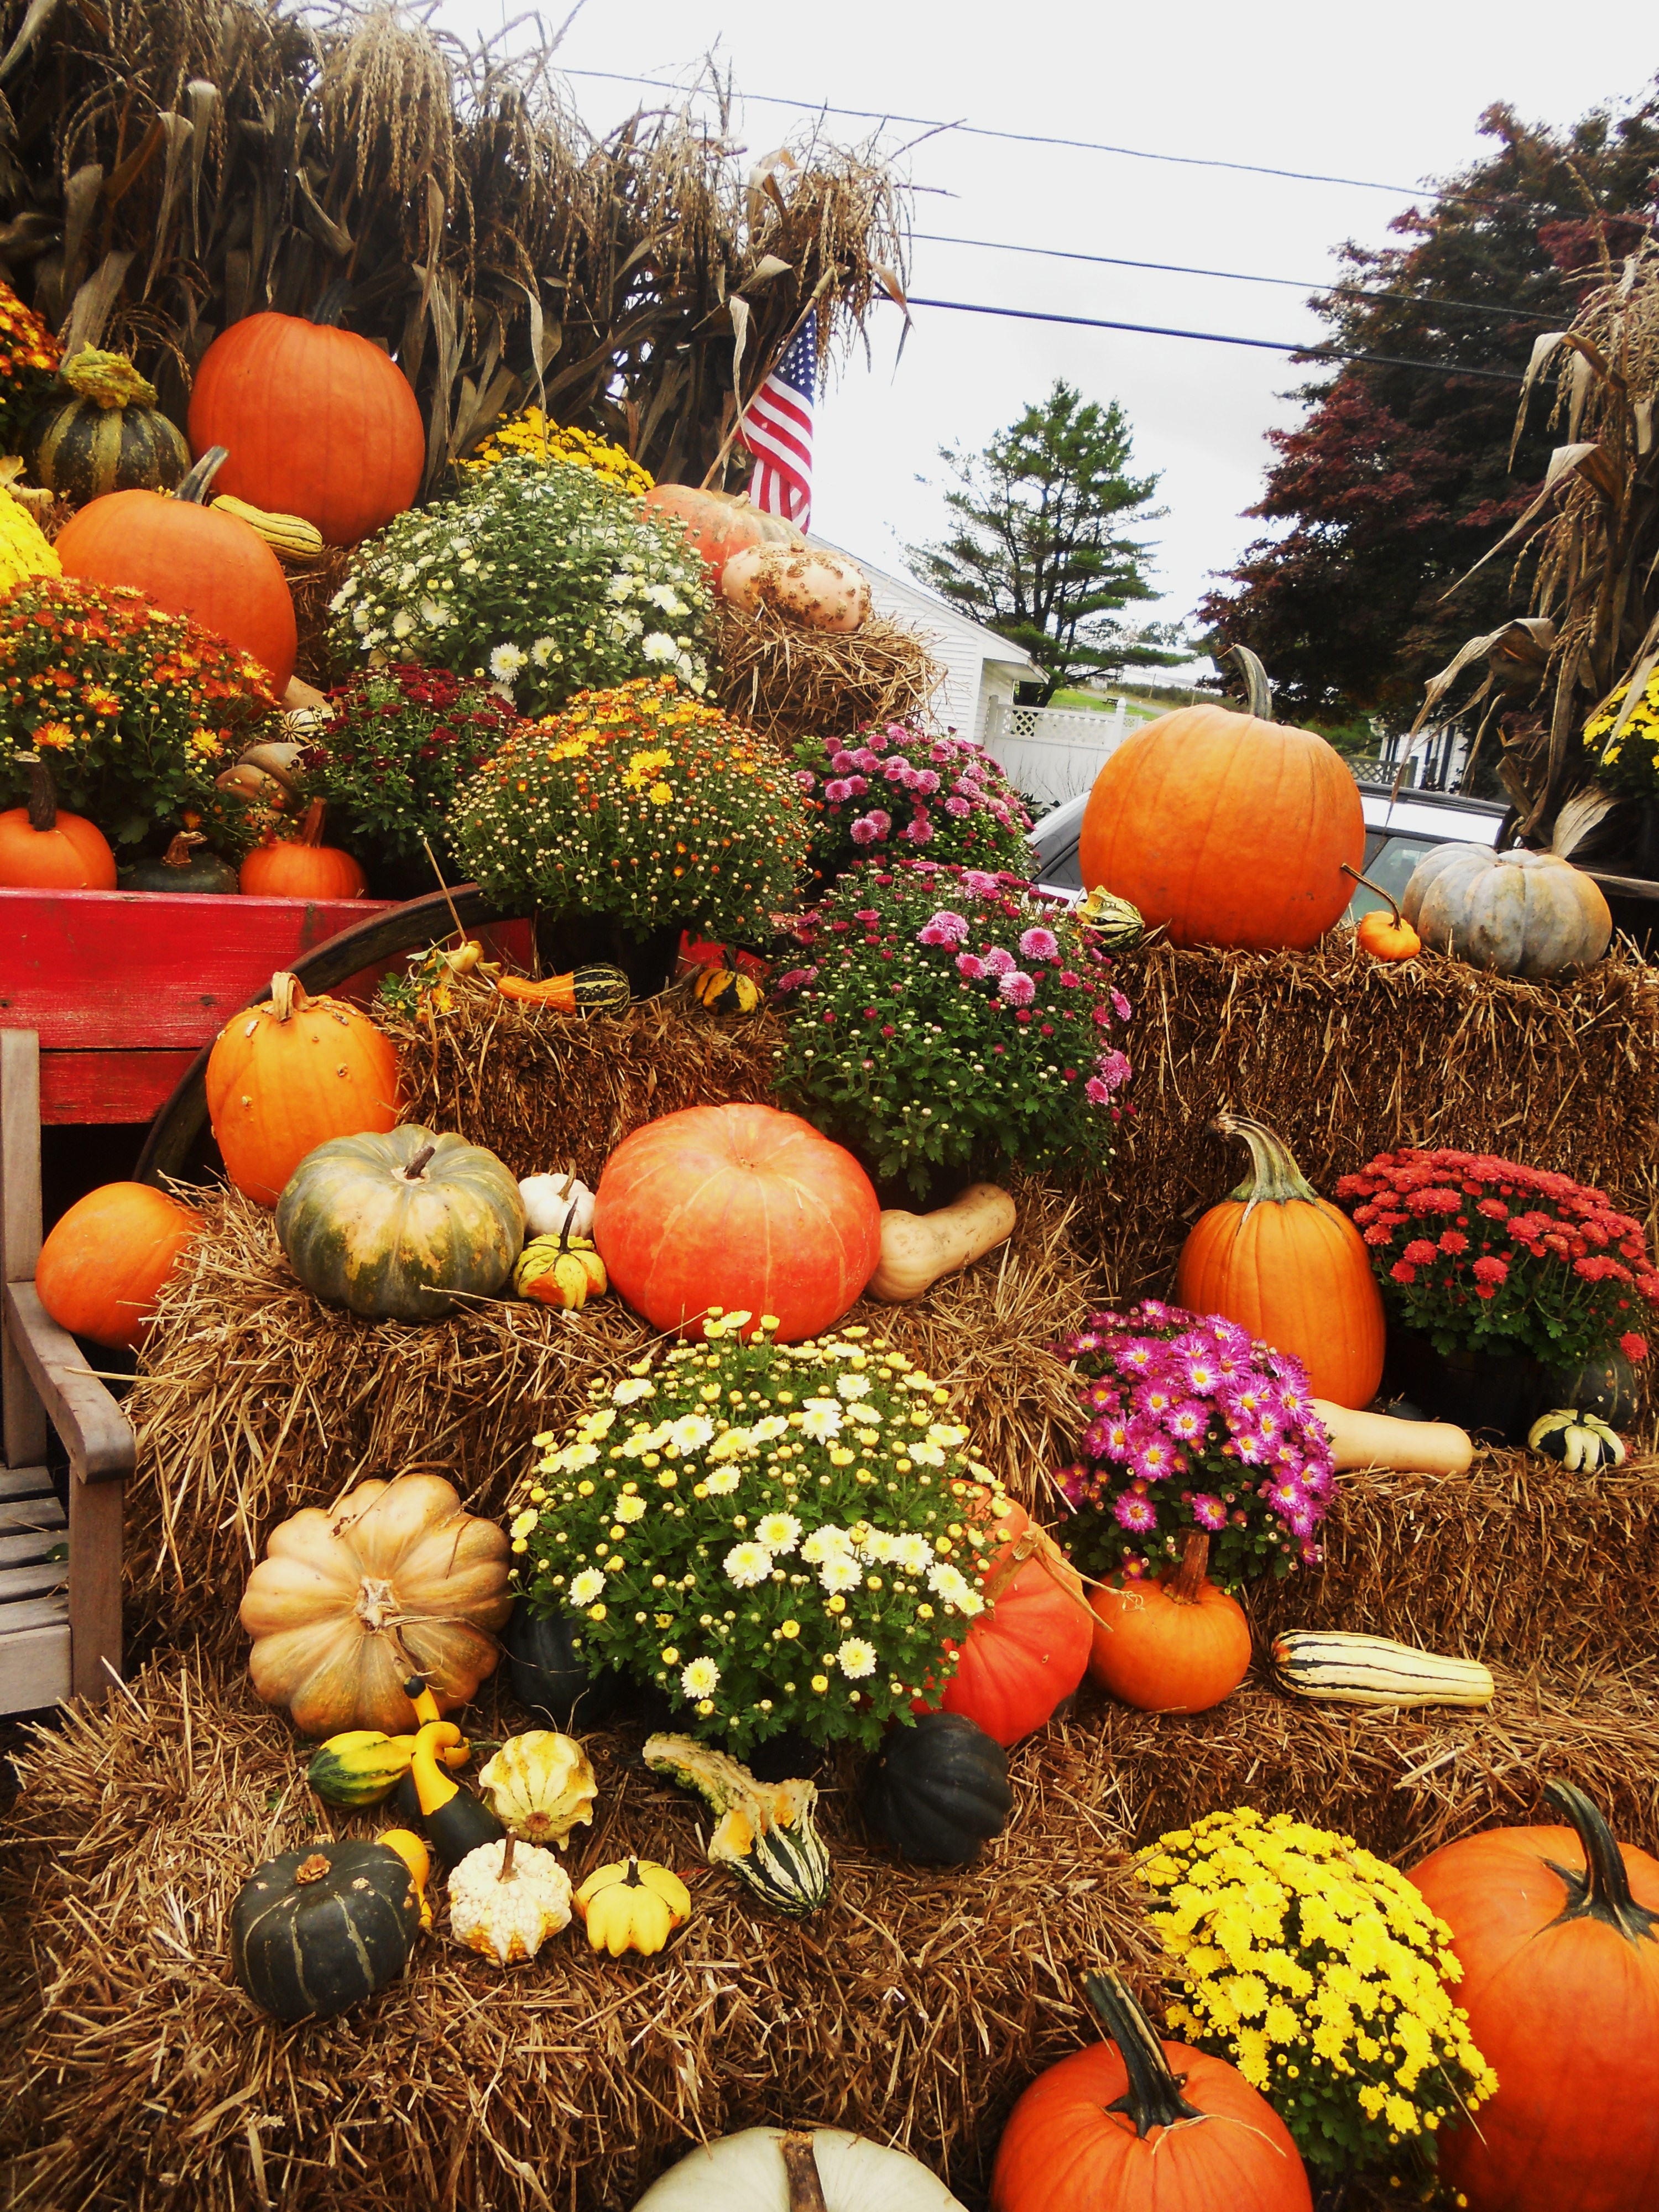 Thanksgiving yard decorations - Fall In New England Pumpkins Apples Mums Amp More